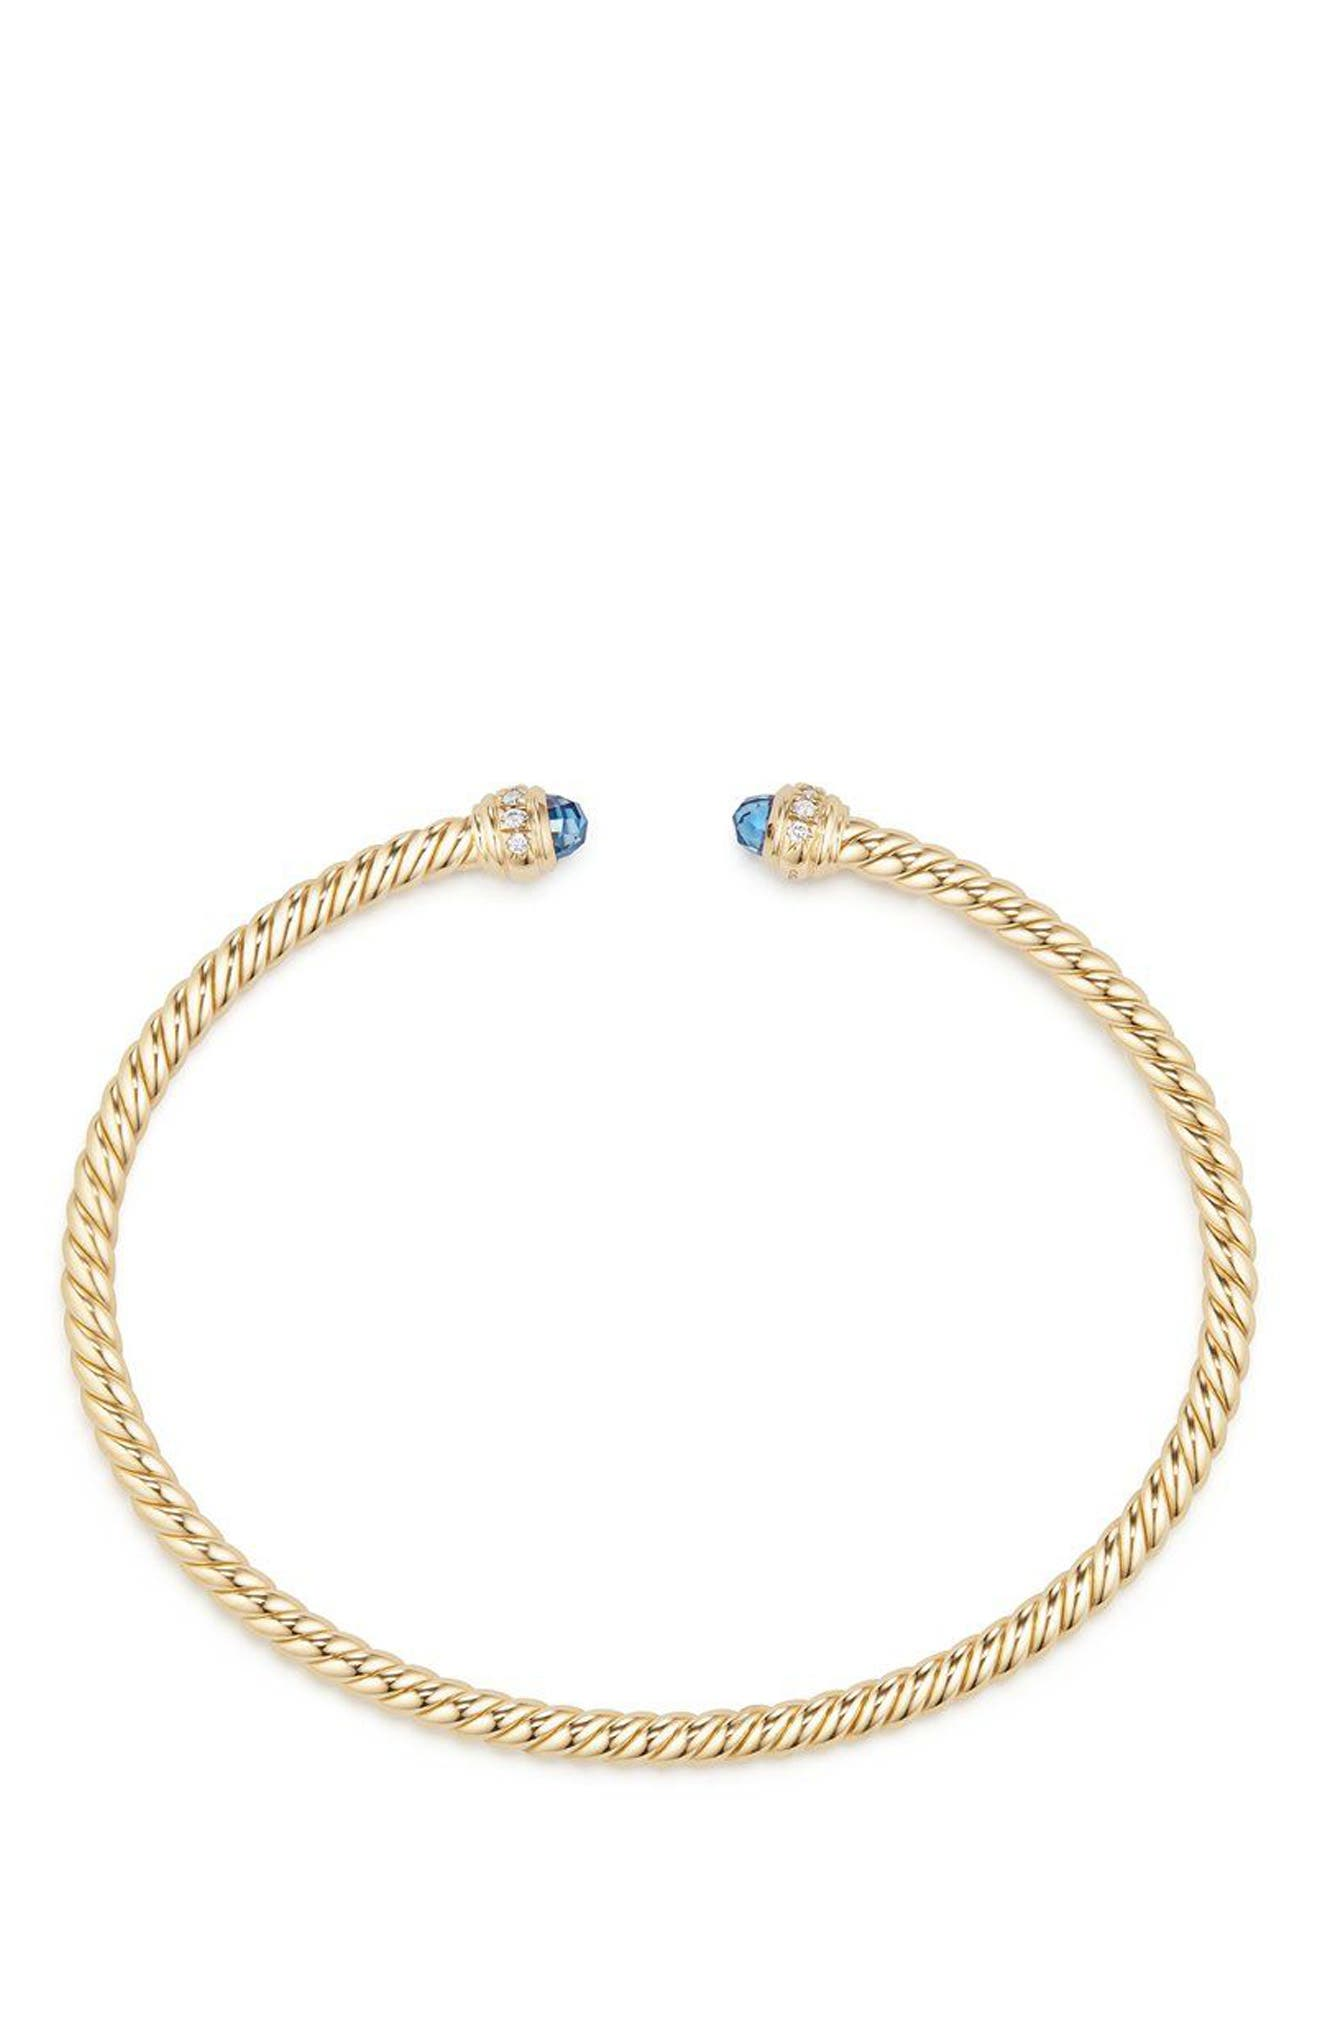 Cable Spira Bracelet in 18K Gold with Diamonds, 3mm,                             Alternate thumbnail 2, color,                             Gold/ Diamond/ Blue Topaz